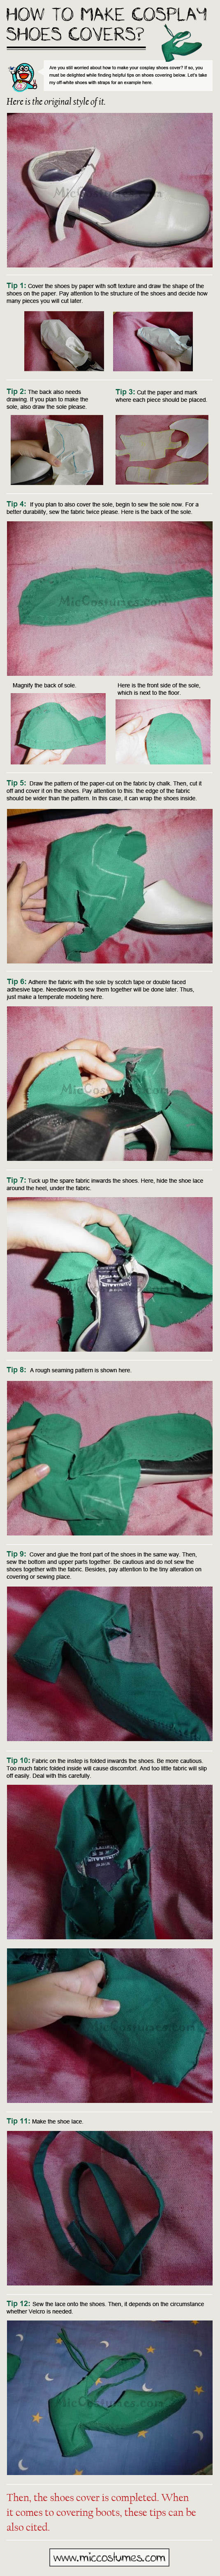 How To Make Shoe Covers For Cosplay [Infographic]